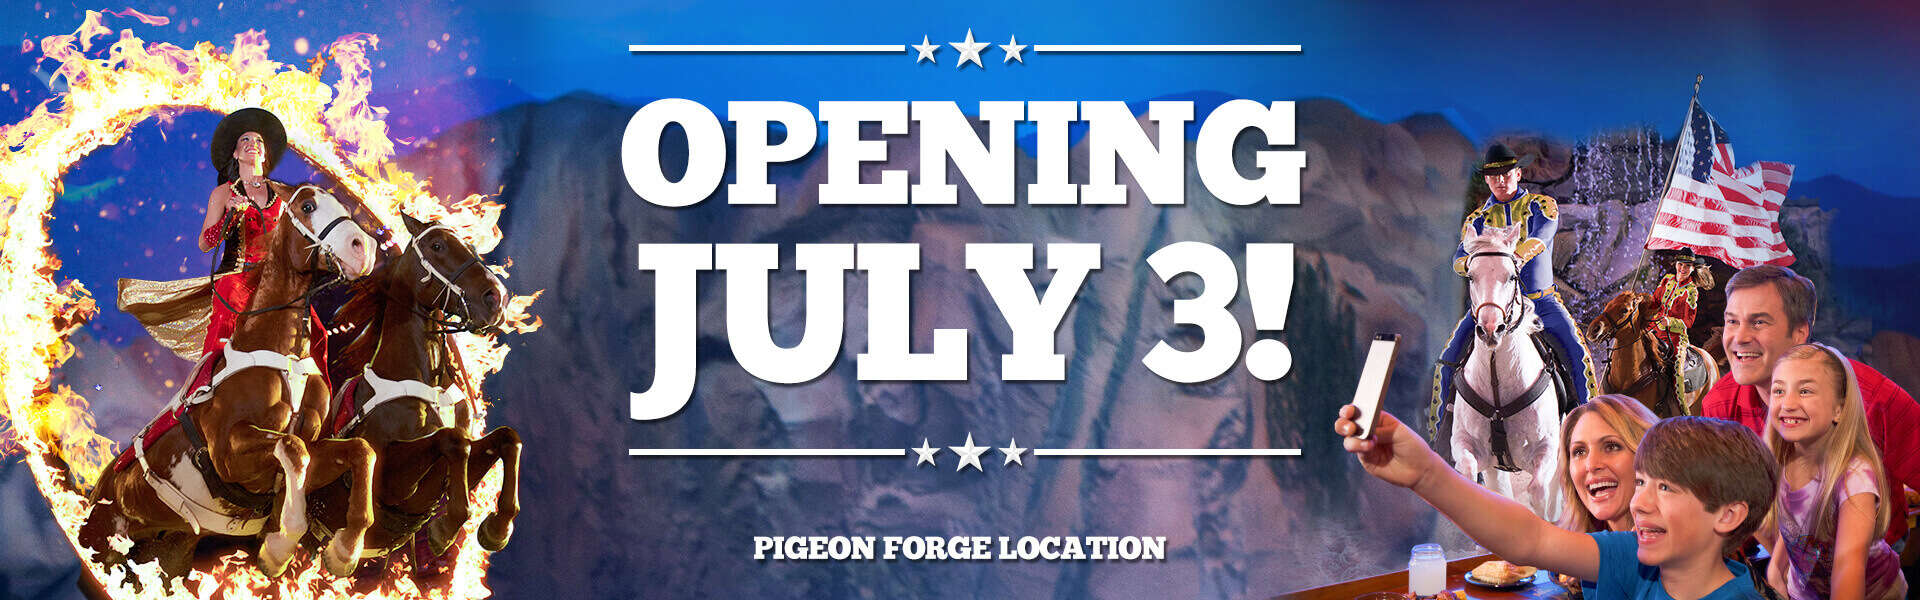 Dolly Parton's Stampede Reopening July 3 in Pigeon Forge, TN